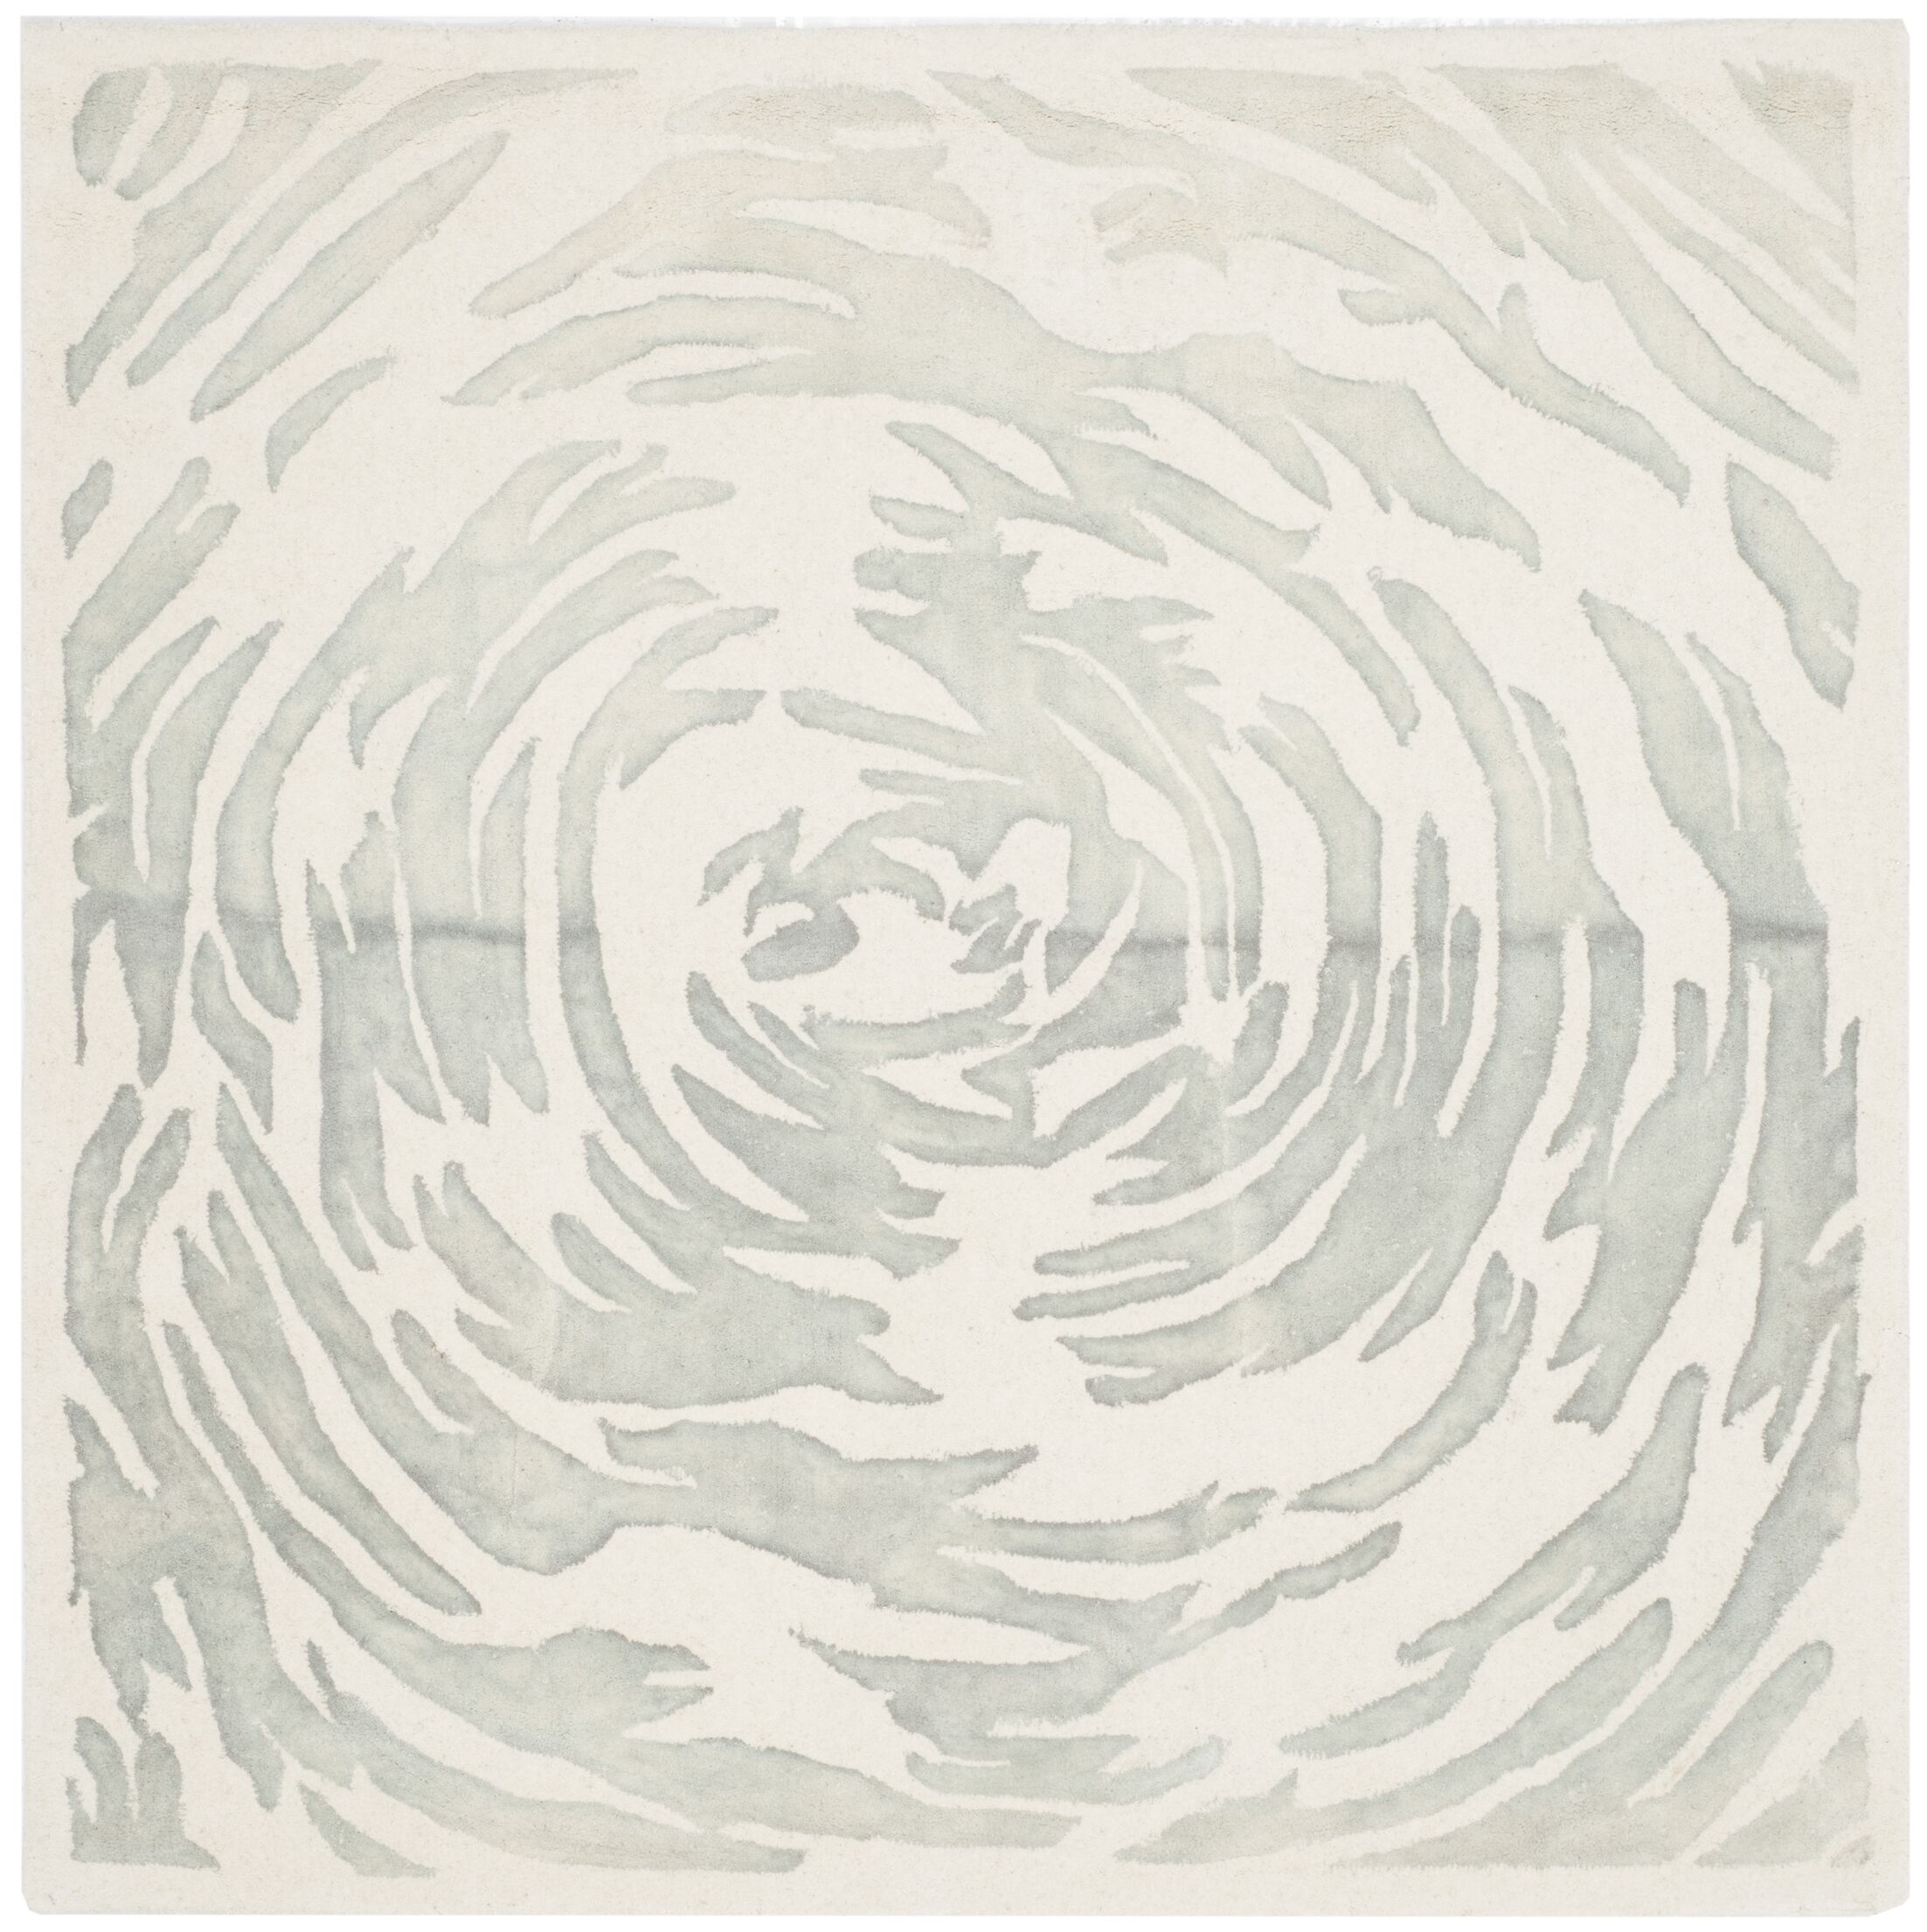 Adan Hand-Tufted Ivory/Grey Area Rug Rug Size: Square 5'